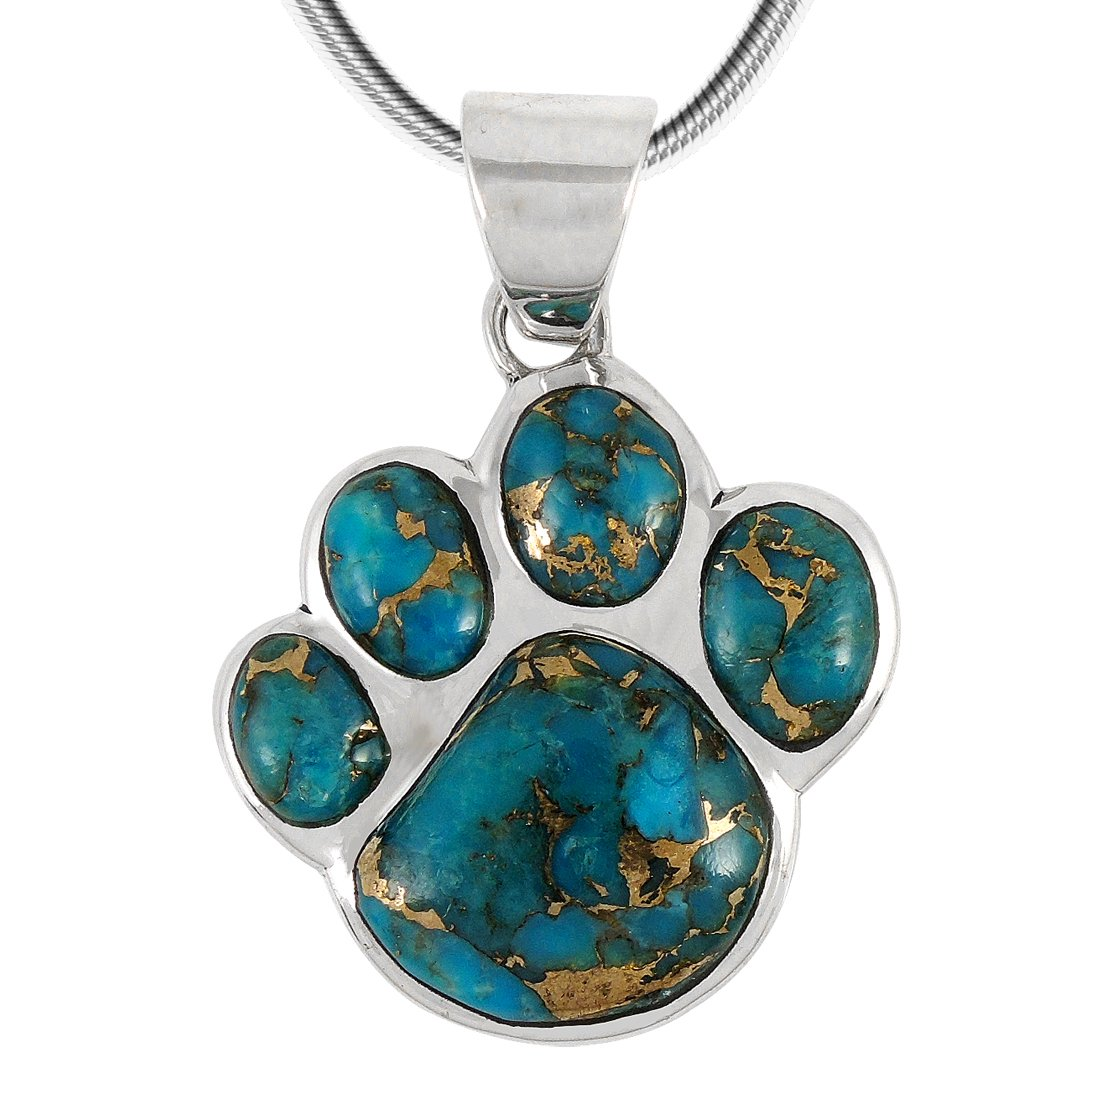 Dog Paw Pendant Necklace 925 Sterling Silver & Genuine Turquoise (20'', Teal/Matrix)